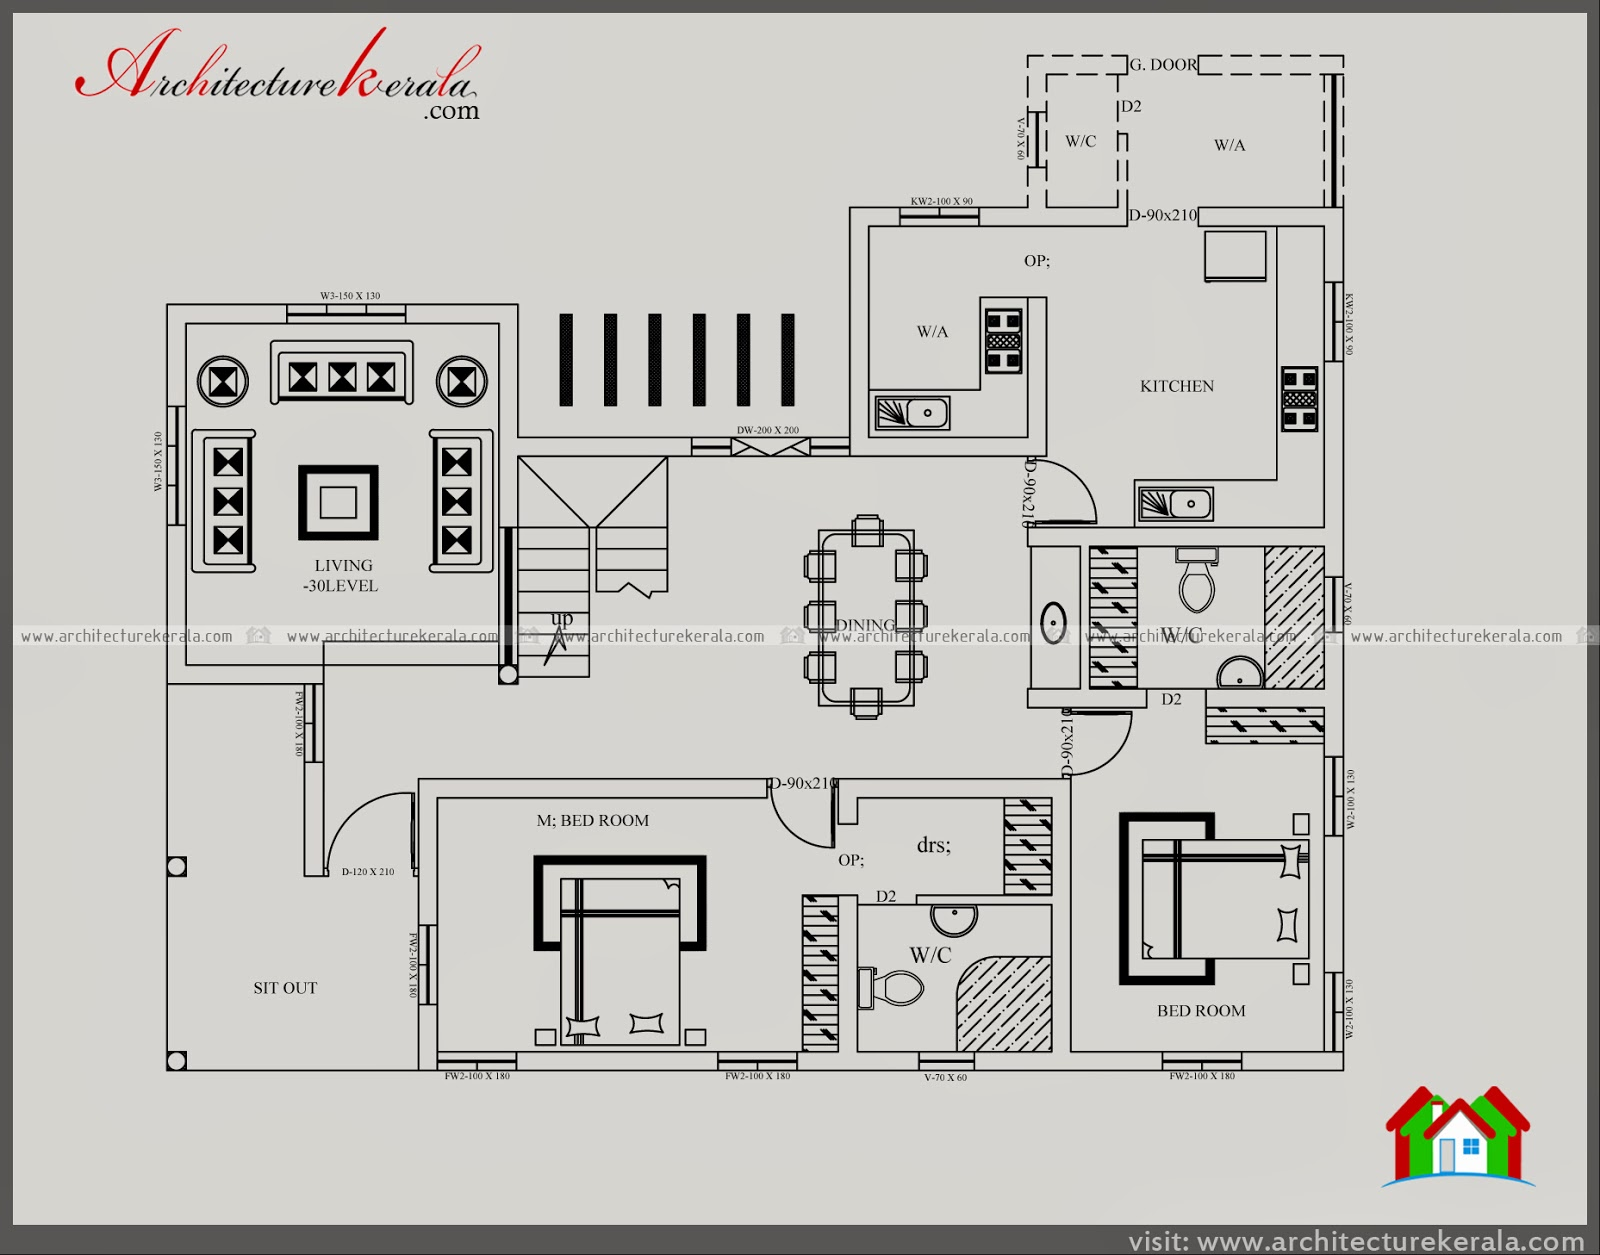 Five bedroom house plan image and elevation architecture for Kerala house plans 3000 sq ft